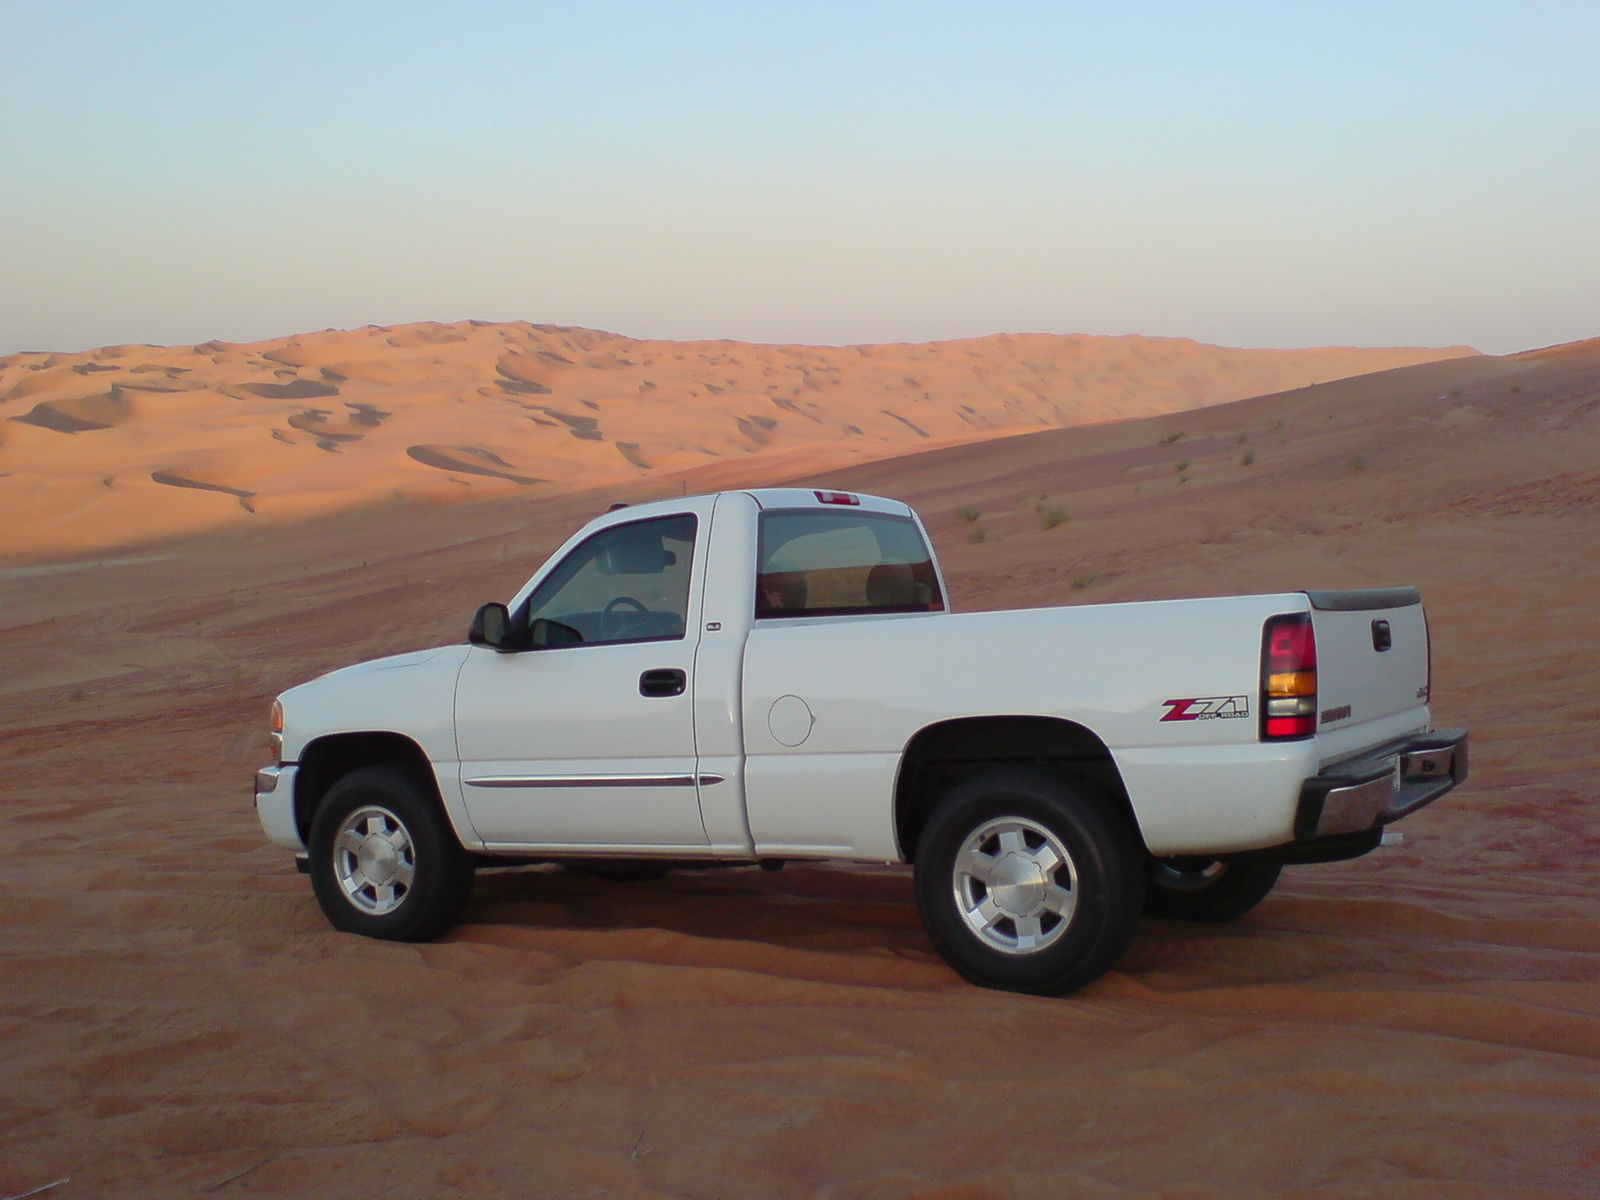 Picture of 2006 GMC Sierra 1500HD SLE1 4dr Crew Cab 4WD SB, exterior